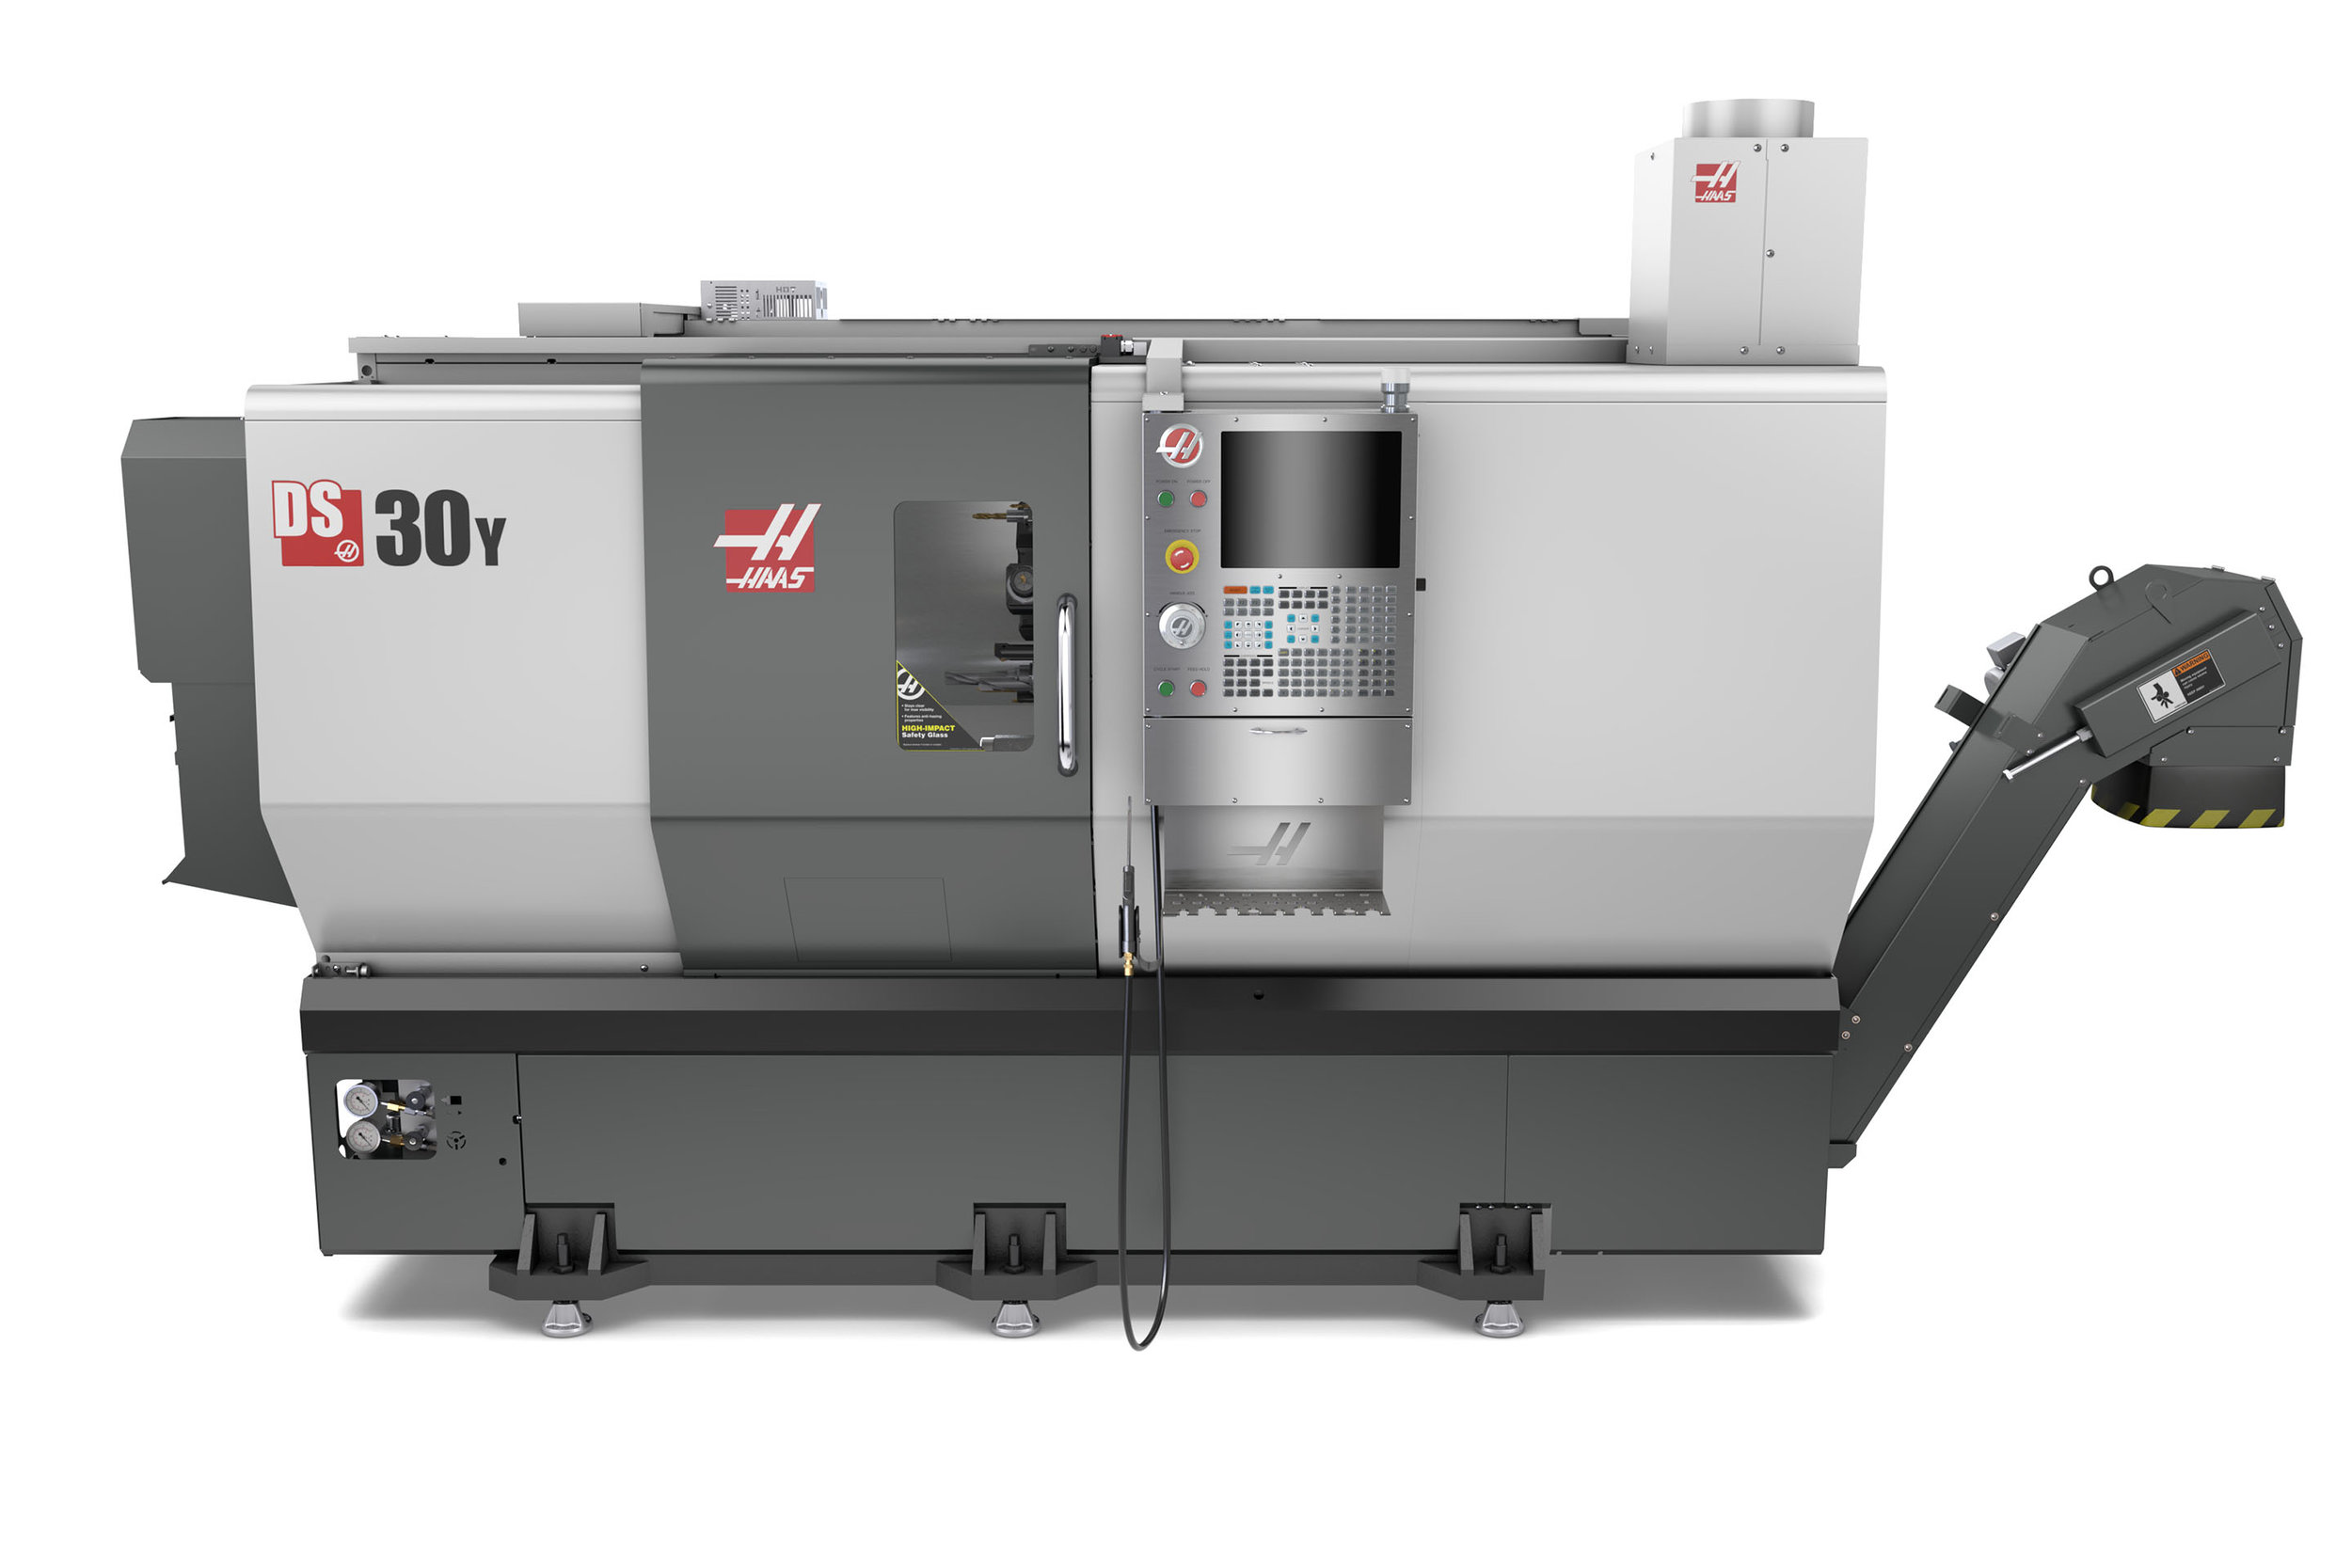 Fitz-Thors-Engineering_Manufacturing-CNC-Milling-Turning_HAAS-DS30Y-Lathe.jpg